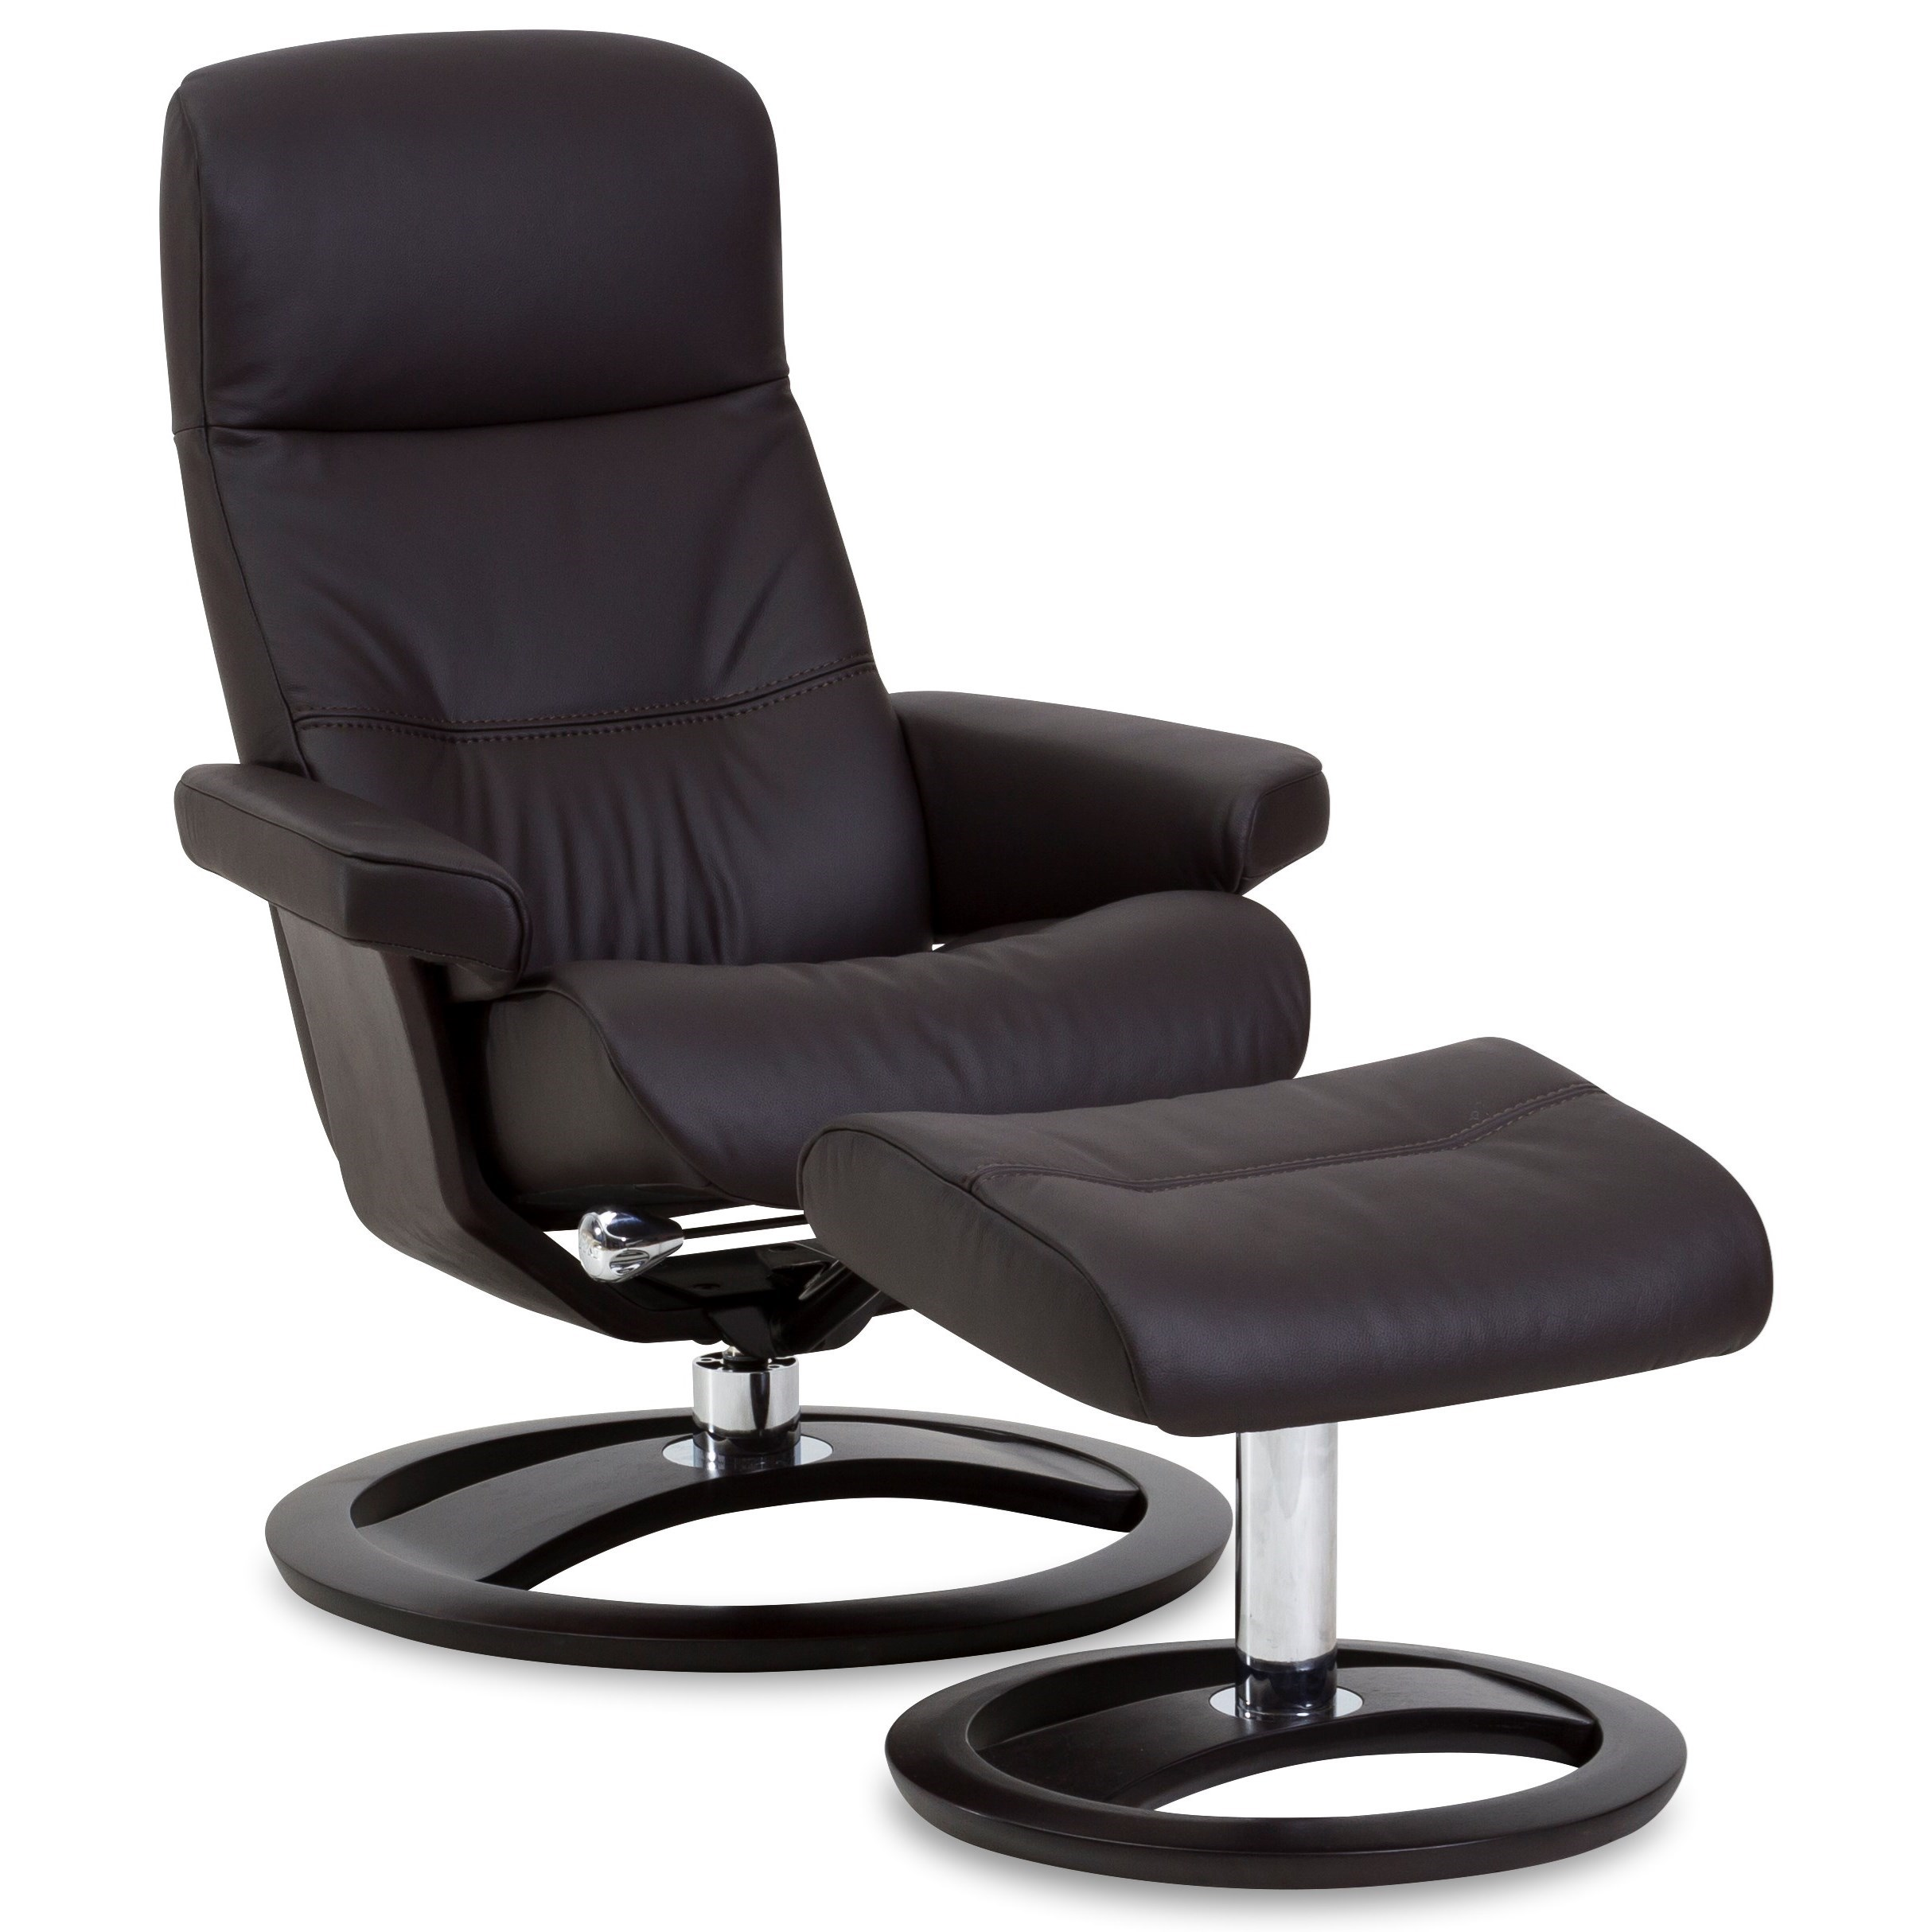 IMG Norway Regal Small Golf Scandinavian Recliner and Ottoman